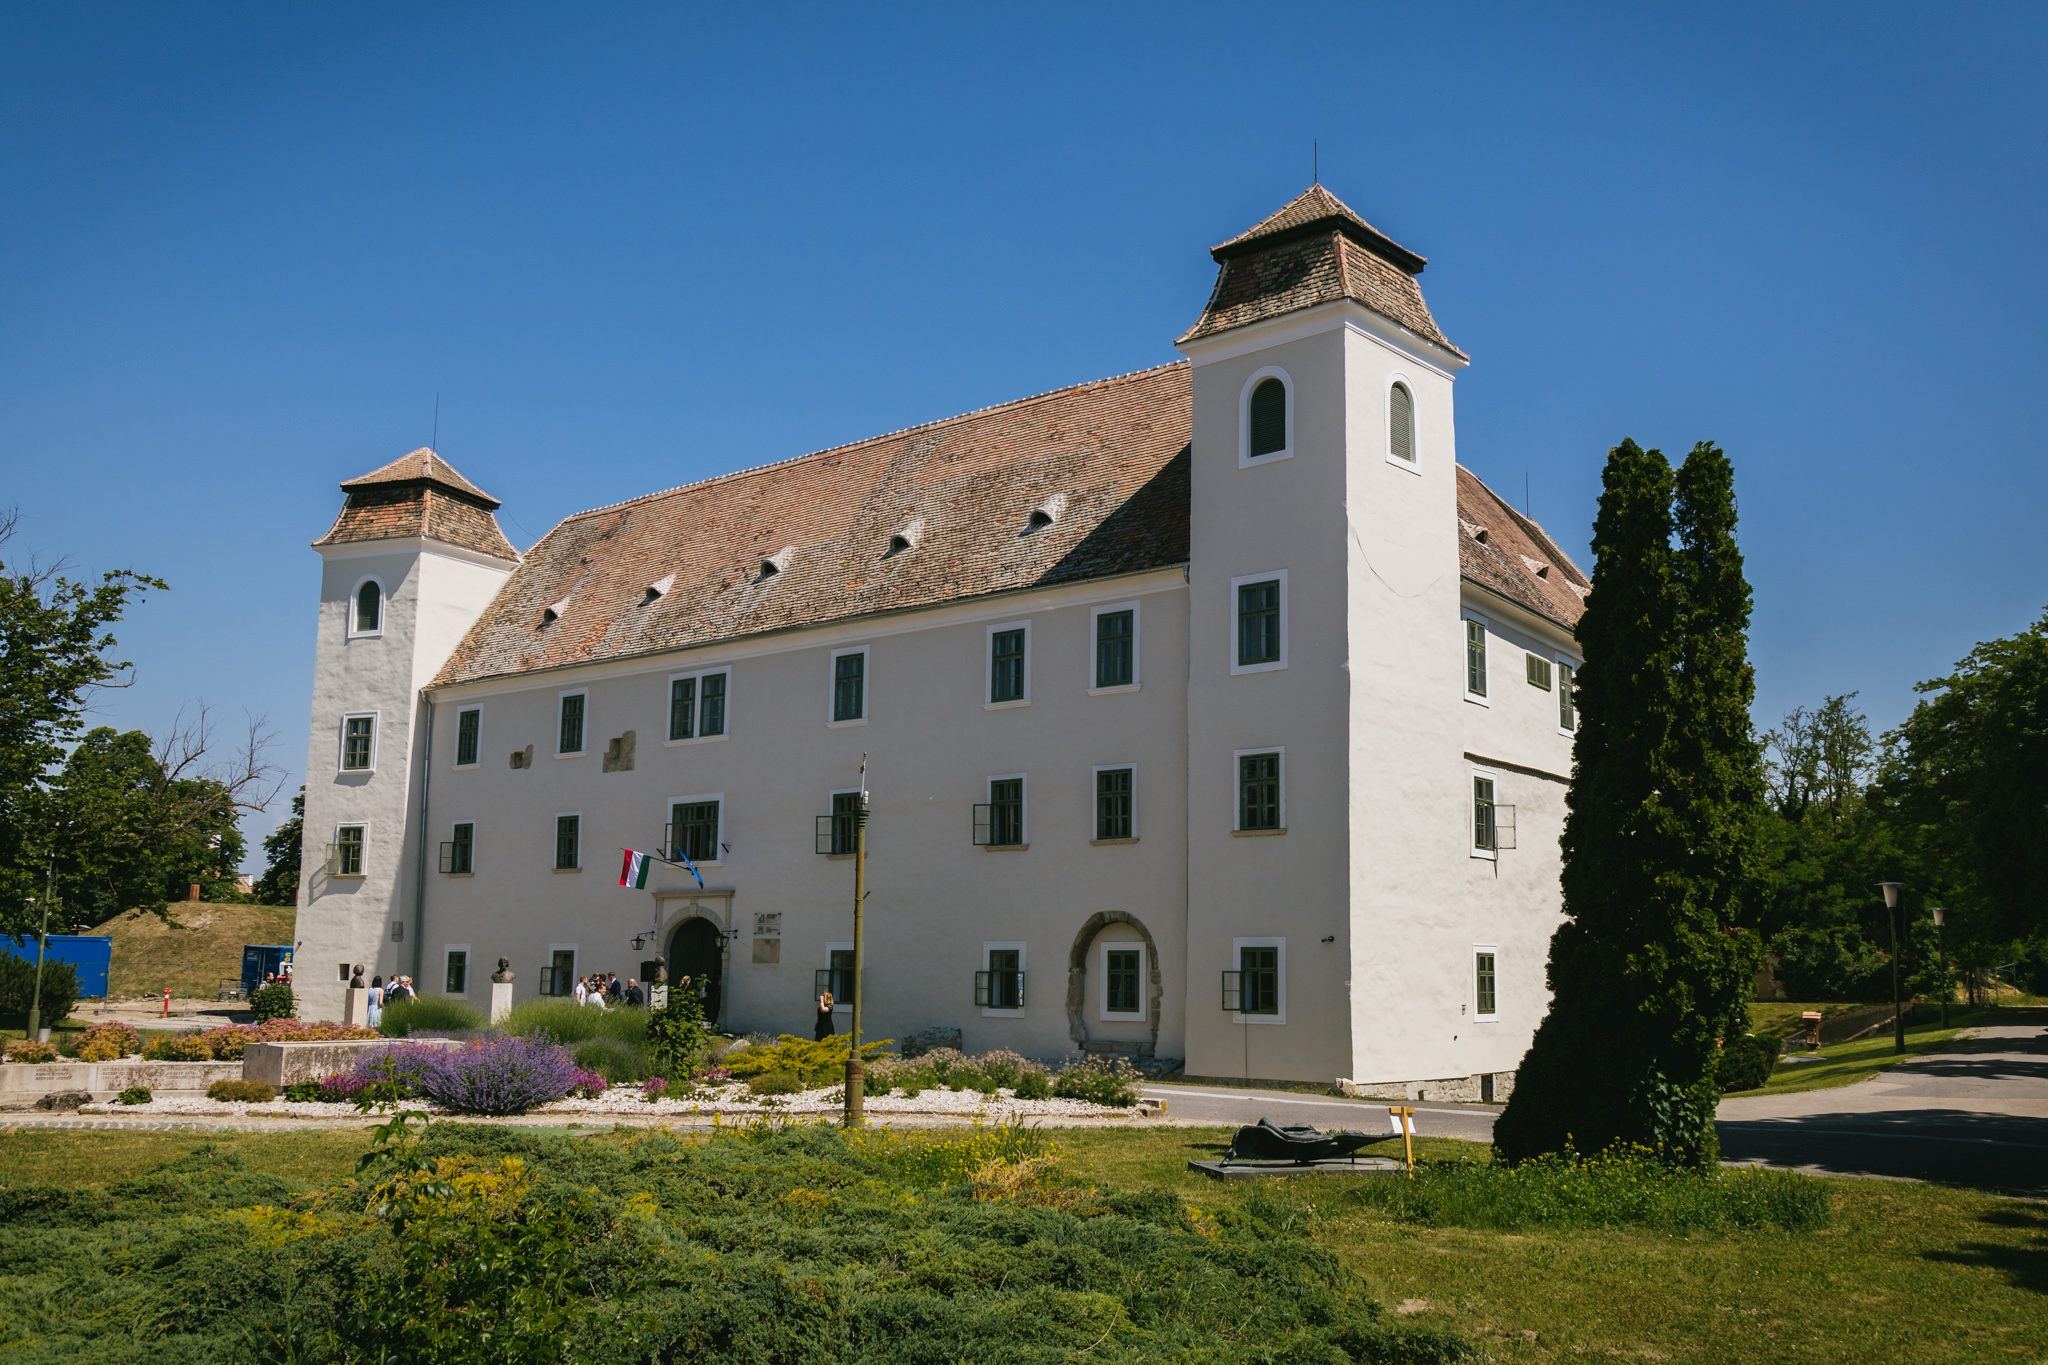 The Castle of Óvár, home to SZE's Faculty of Agriculture and Food Sciences, renovated